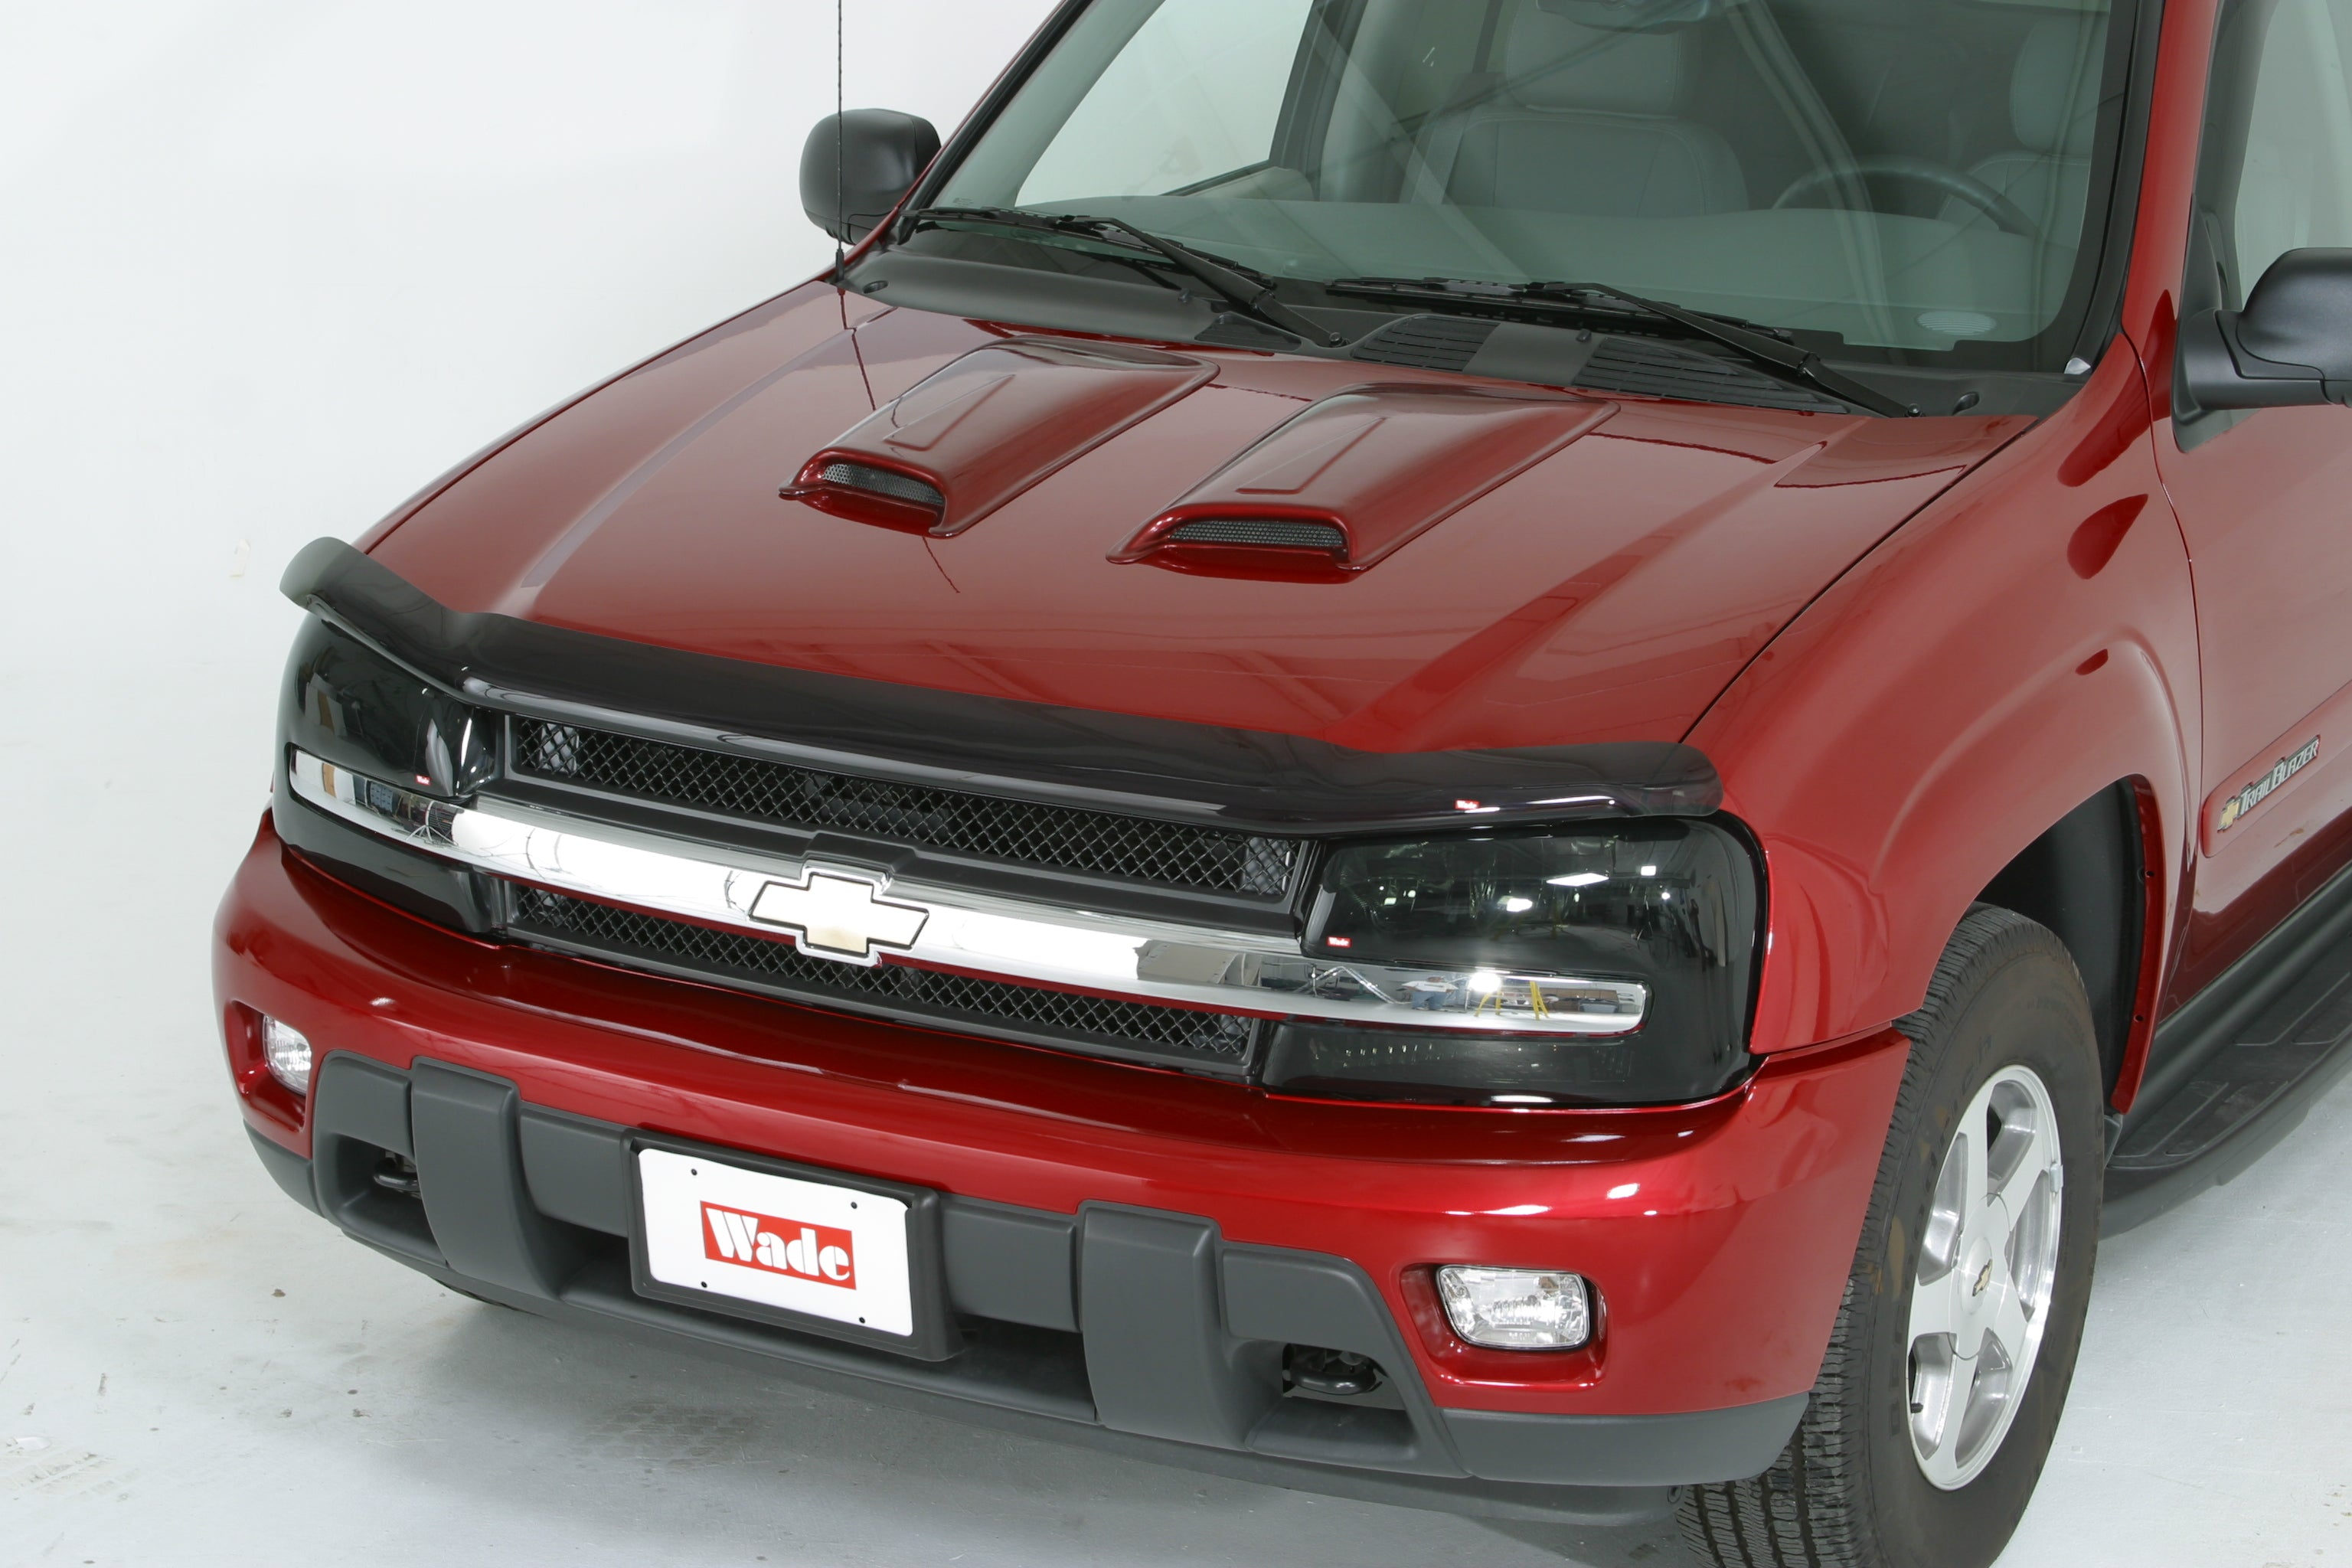 1991 Nissan Pickup 4WD (flush mount) Head Light Covers